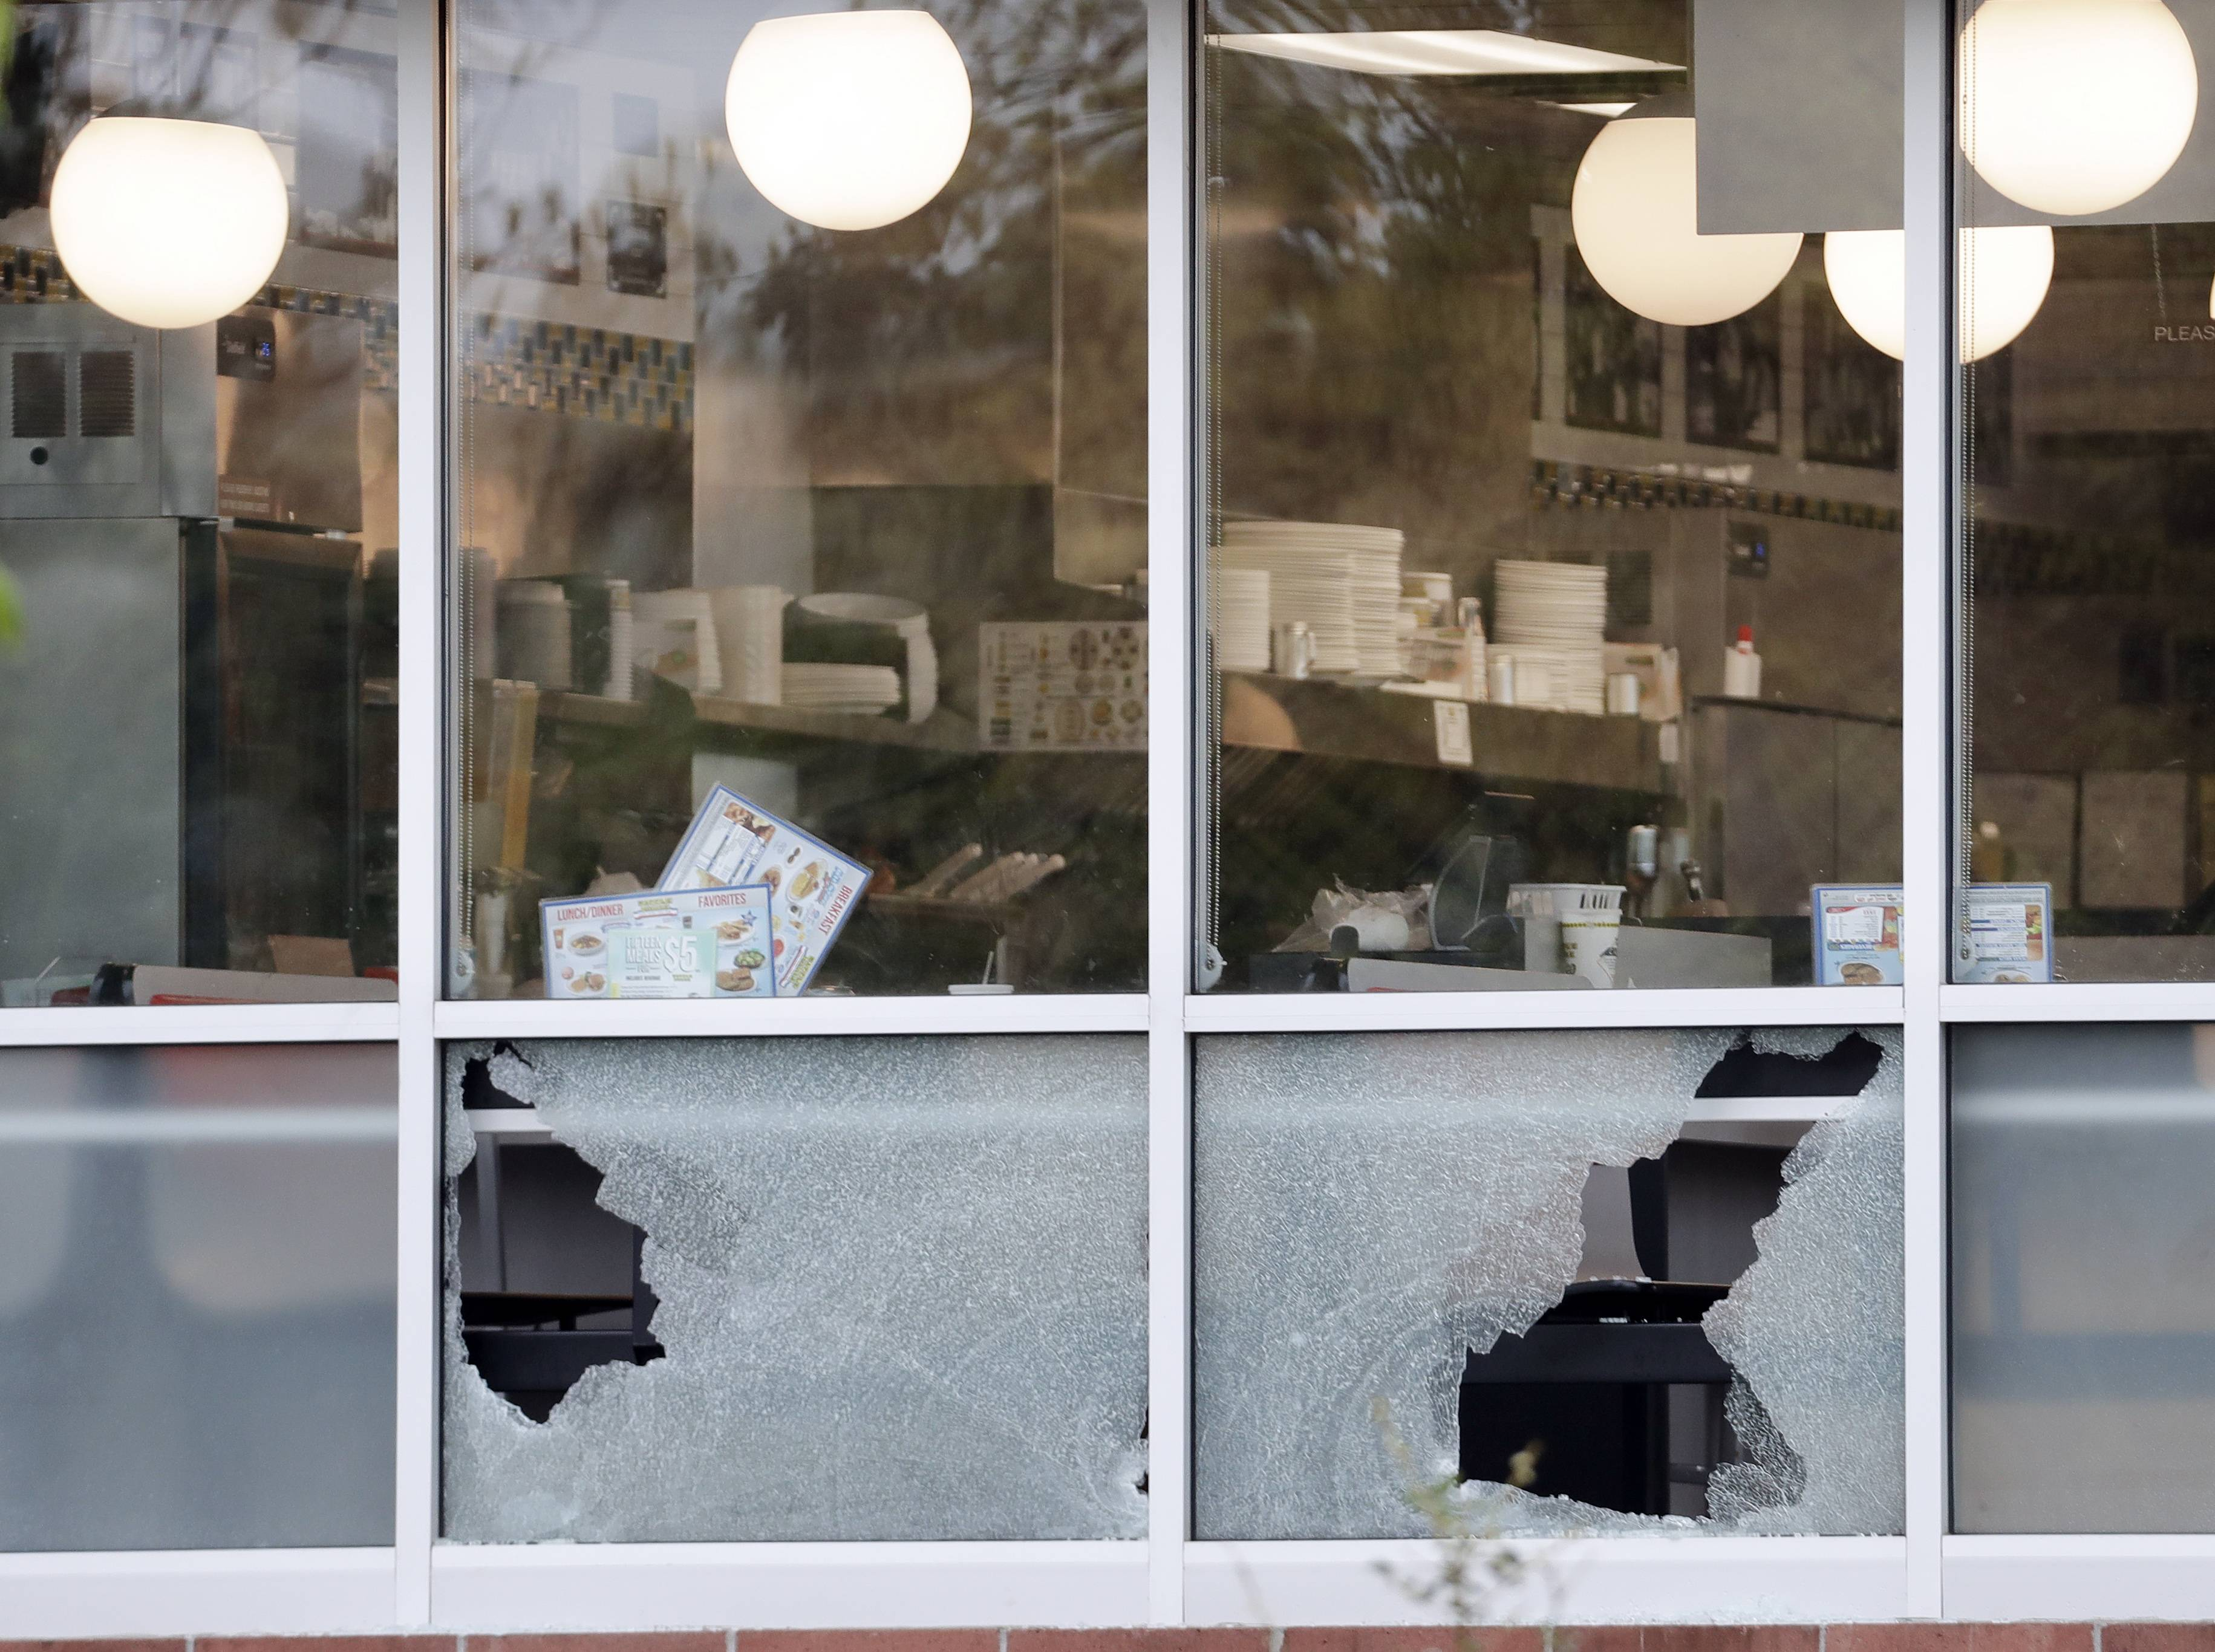 Menus sit on tables next to windows shot out at a Waffle House restaurant Sunday in Nashville, Tennessee, where four people died.